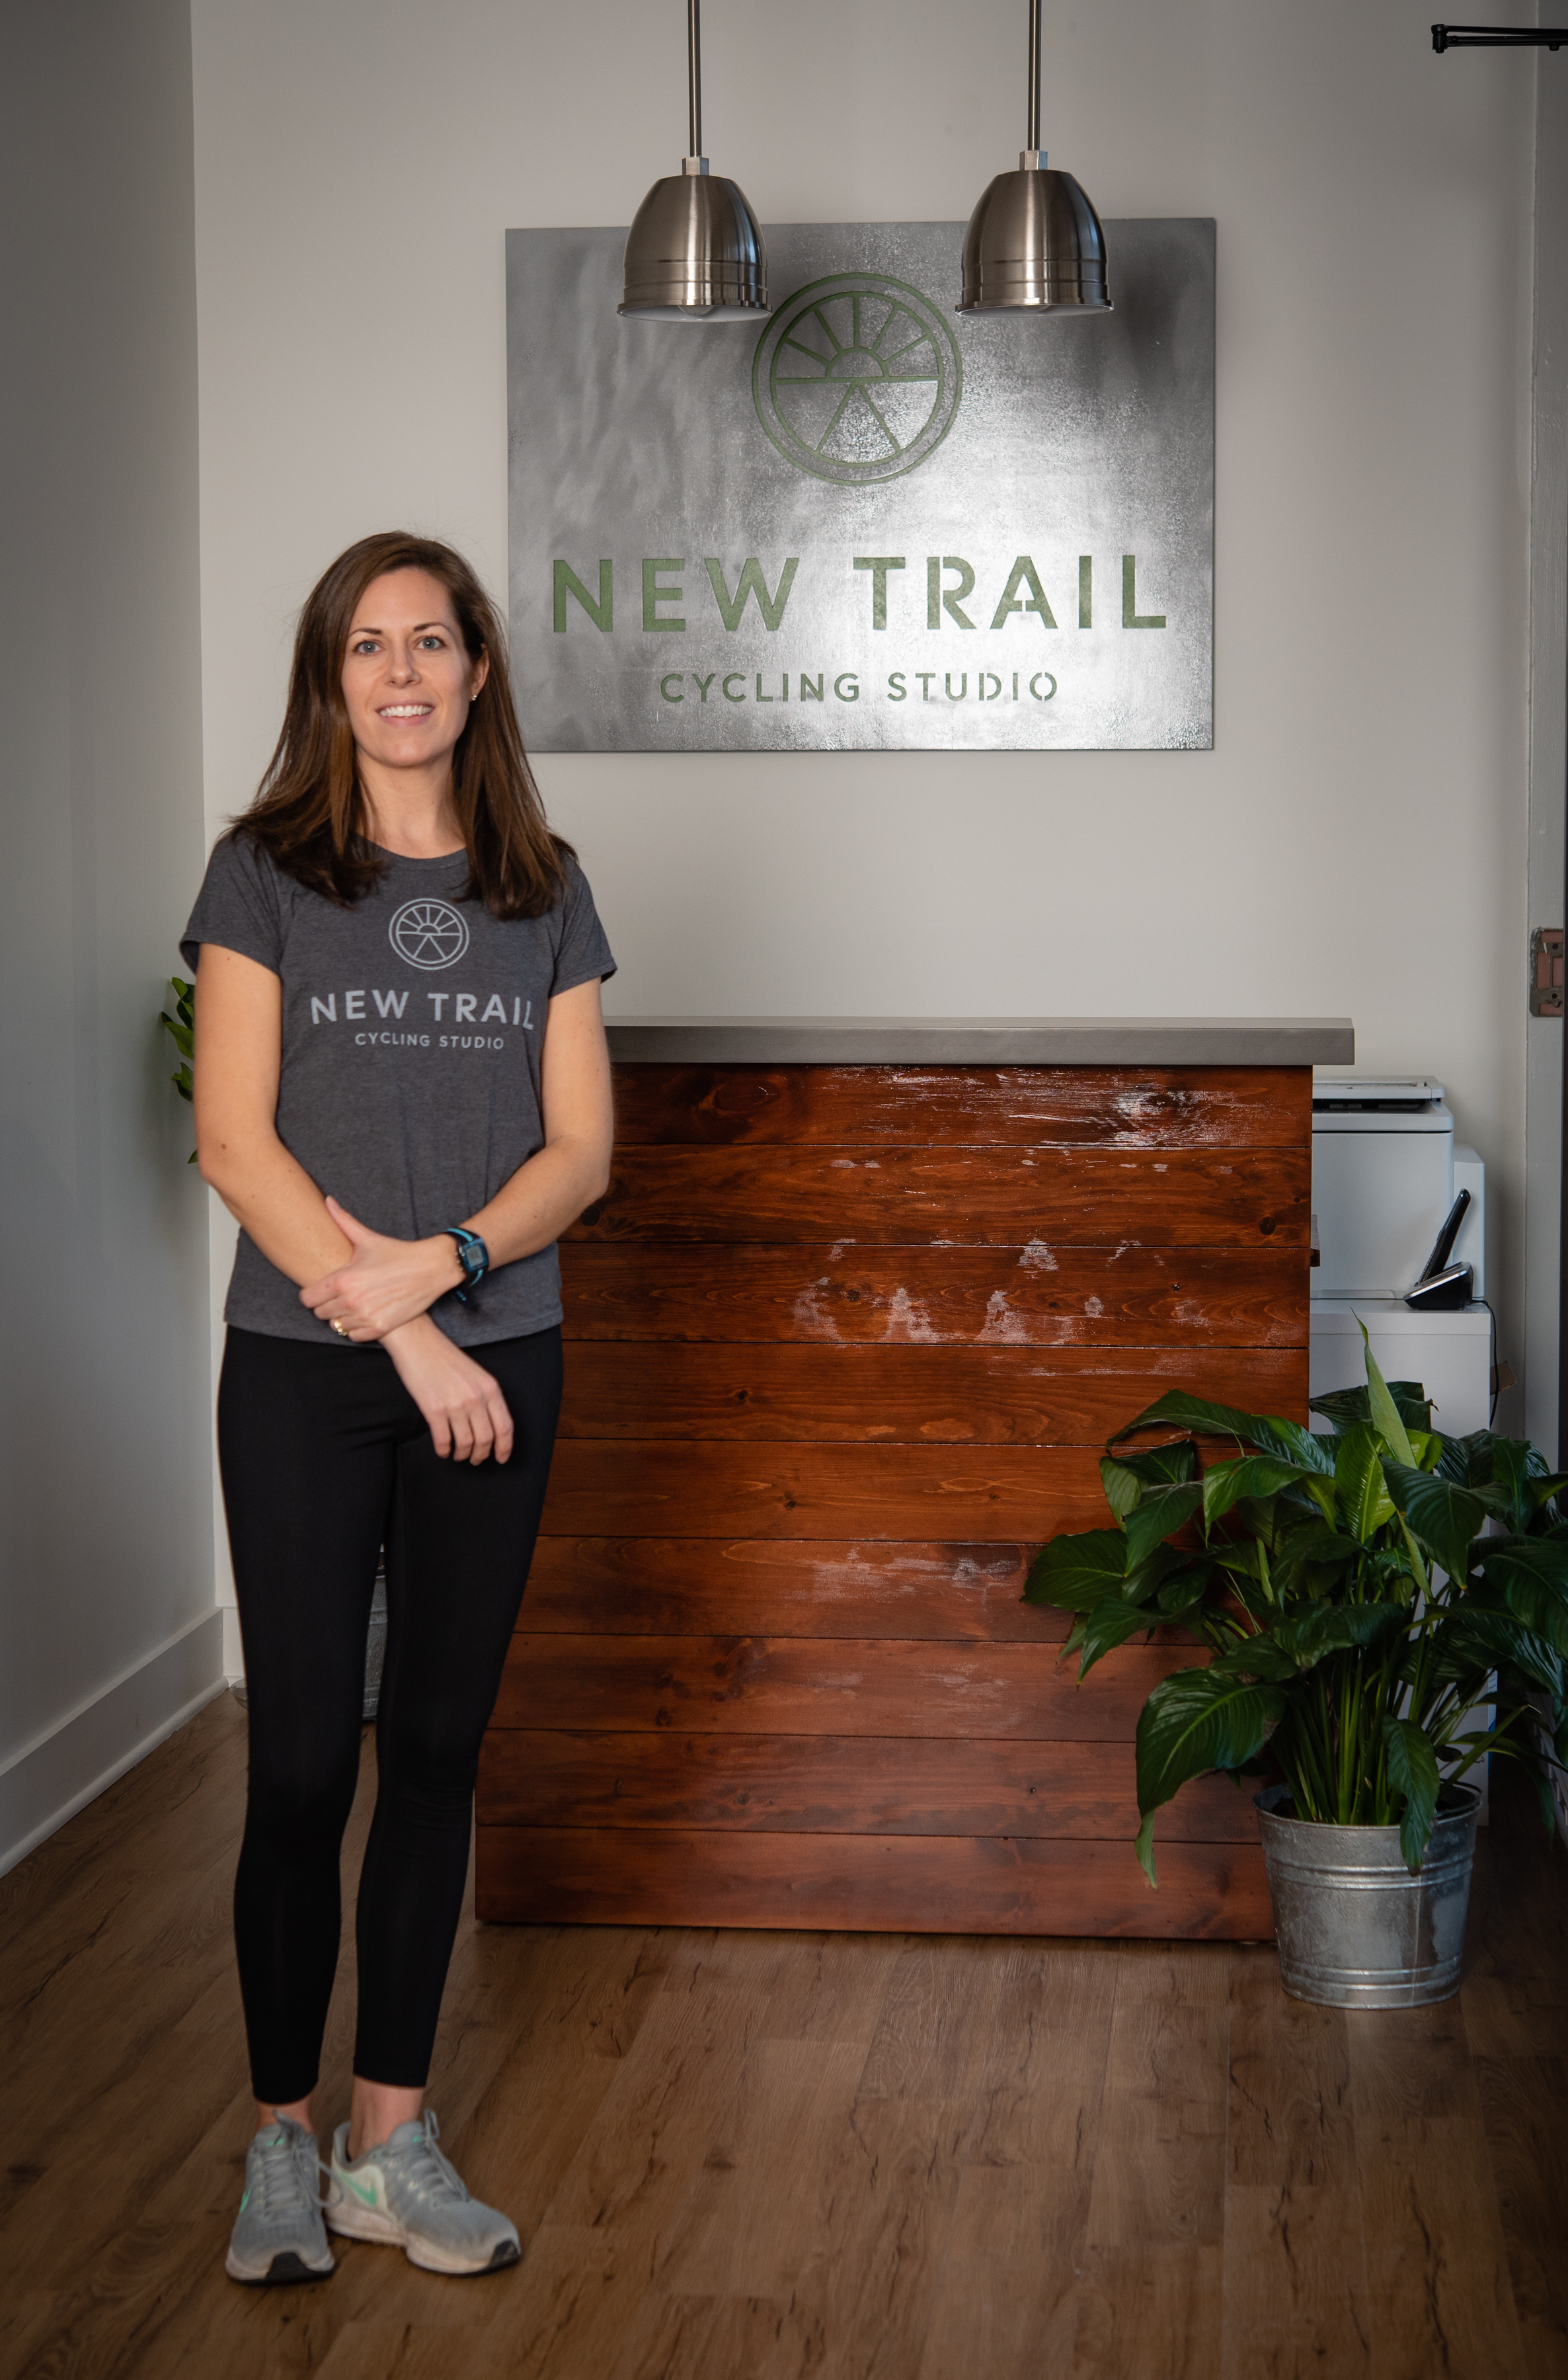 About the Founder - Liz Kamp - I've been teaching, training and/or managing fitness facilities and programs since 2003. Through the years, I've successfully coached many types of clients: those dealing with injuries, new moms trying get back to a fitness routine, people struggling to motivate to exercise, even athletes trying to take it up a notch. I have dealt with each of these issues myself, and cycling has always been an outlet where I can focus on myself, feeling my best, and achieving my personal goals. At New Trail, people come to have fun while they get in shape, work toward fitness goals, and feel a sense of community – we're all on this trail together.As a Reston resident for more than a decade, I'm thrilled to be a member of the growing group of diverse and talented merchants at Lake Anne.Welcome to New Trail, I hope you find a home riding with us.